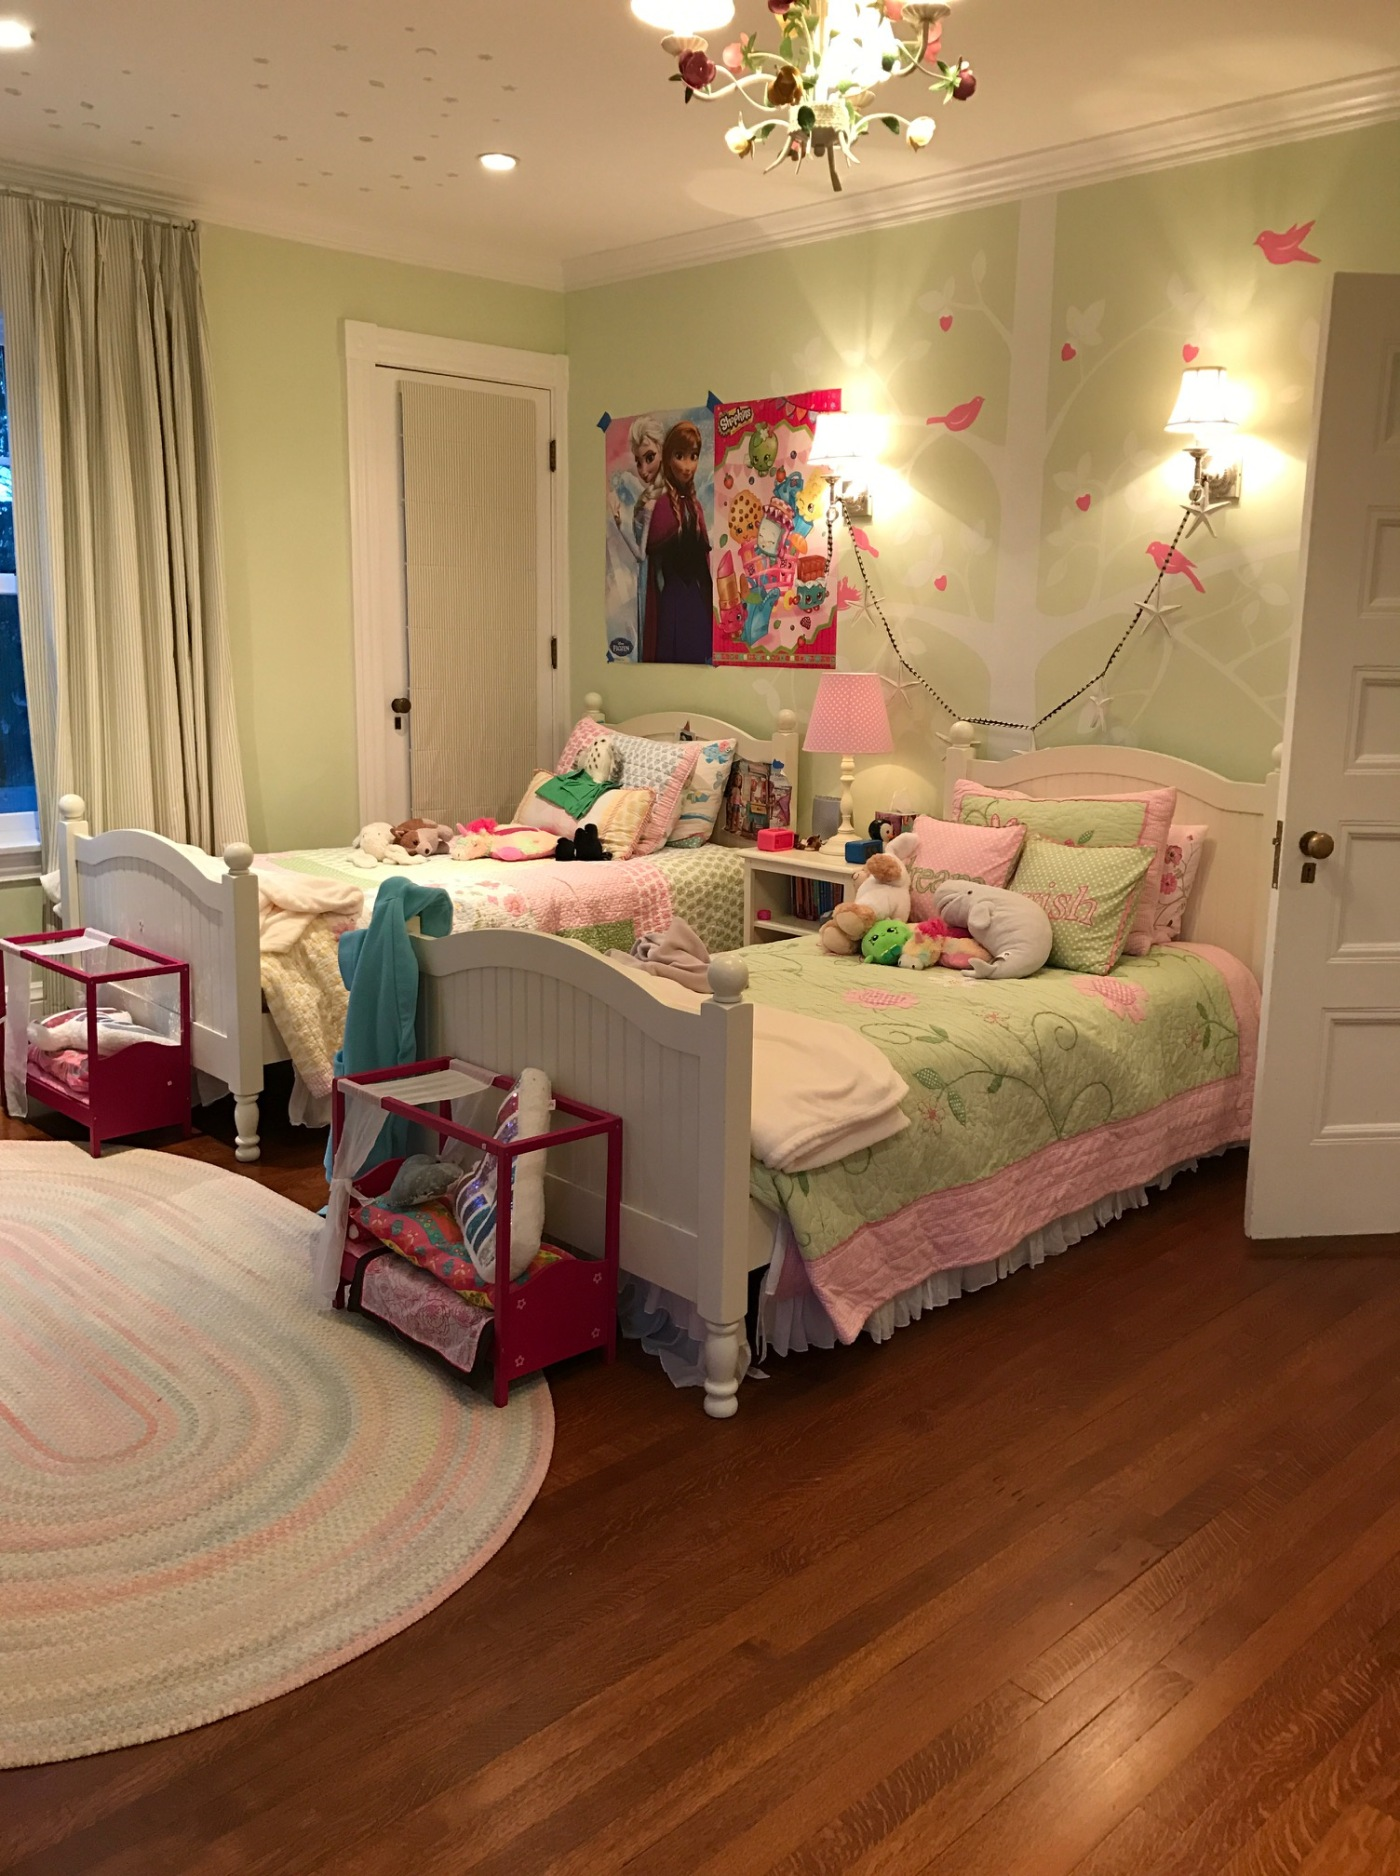 One Room Challenge Week 2: Embrace the Change | Interiors for Families | Kelly Rogers Interiors